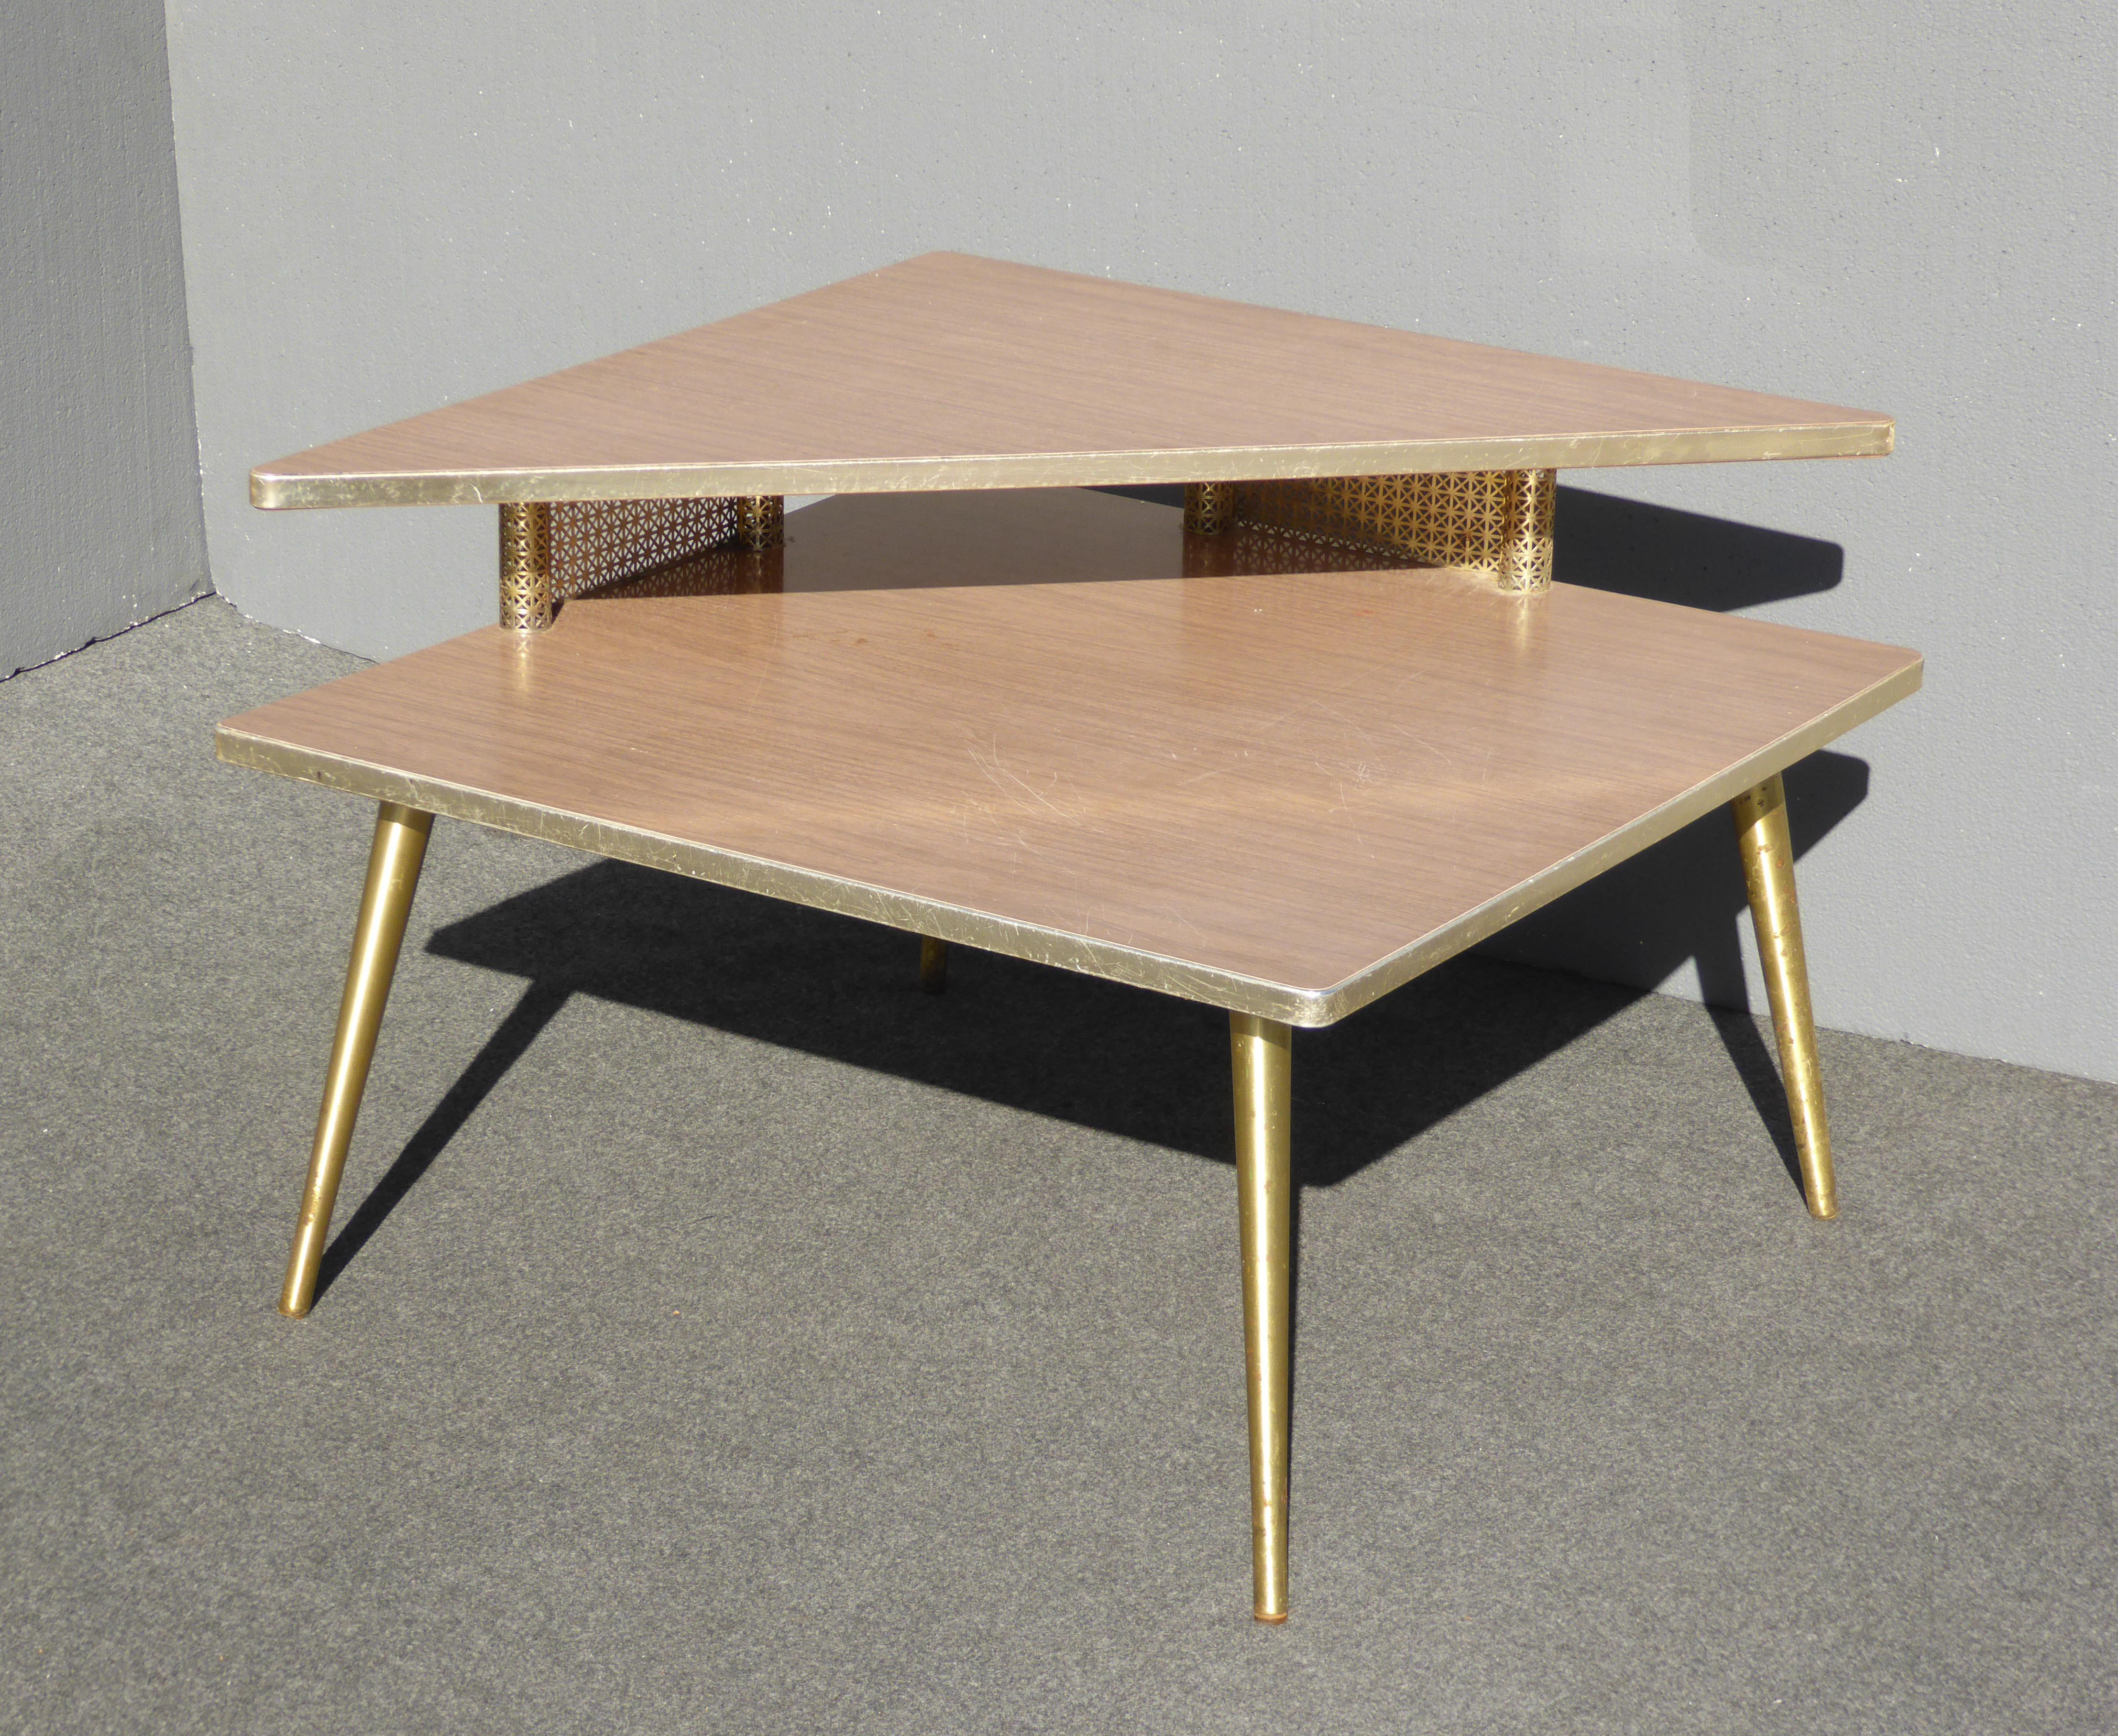 Nice Mid Century Modern Retro Corner Table /End Table With Brass Peg Legs    Image 2